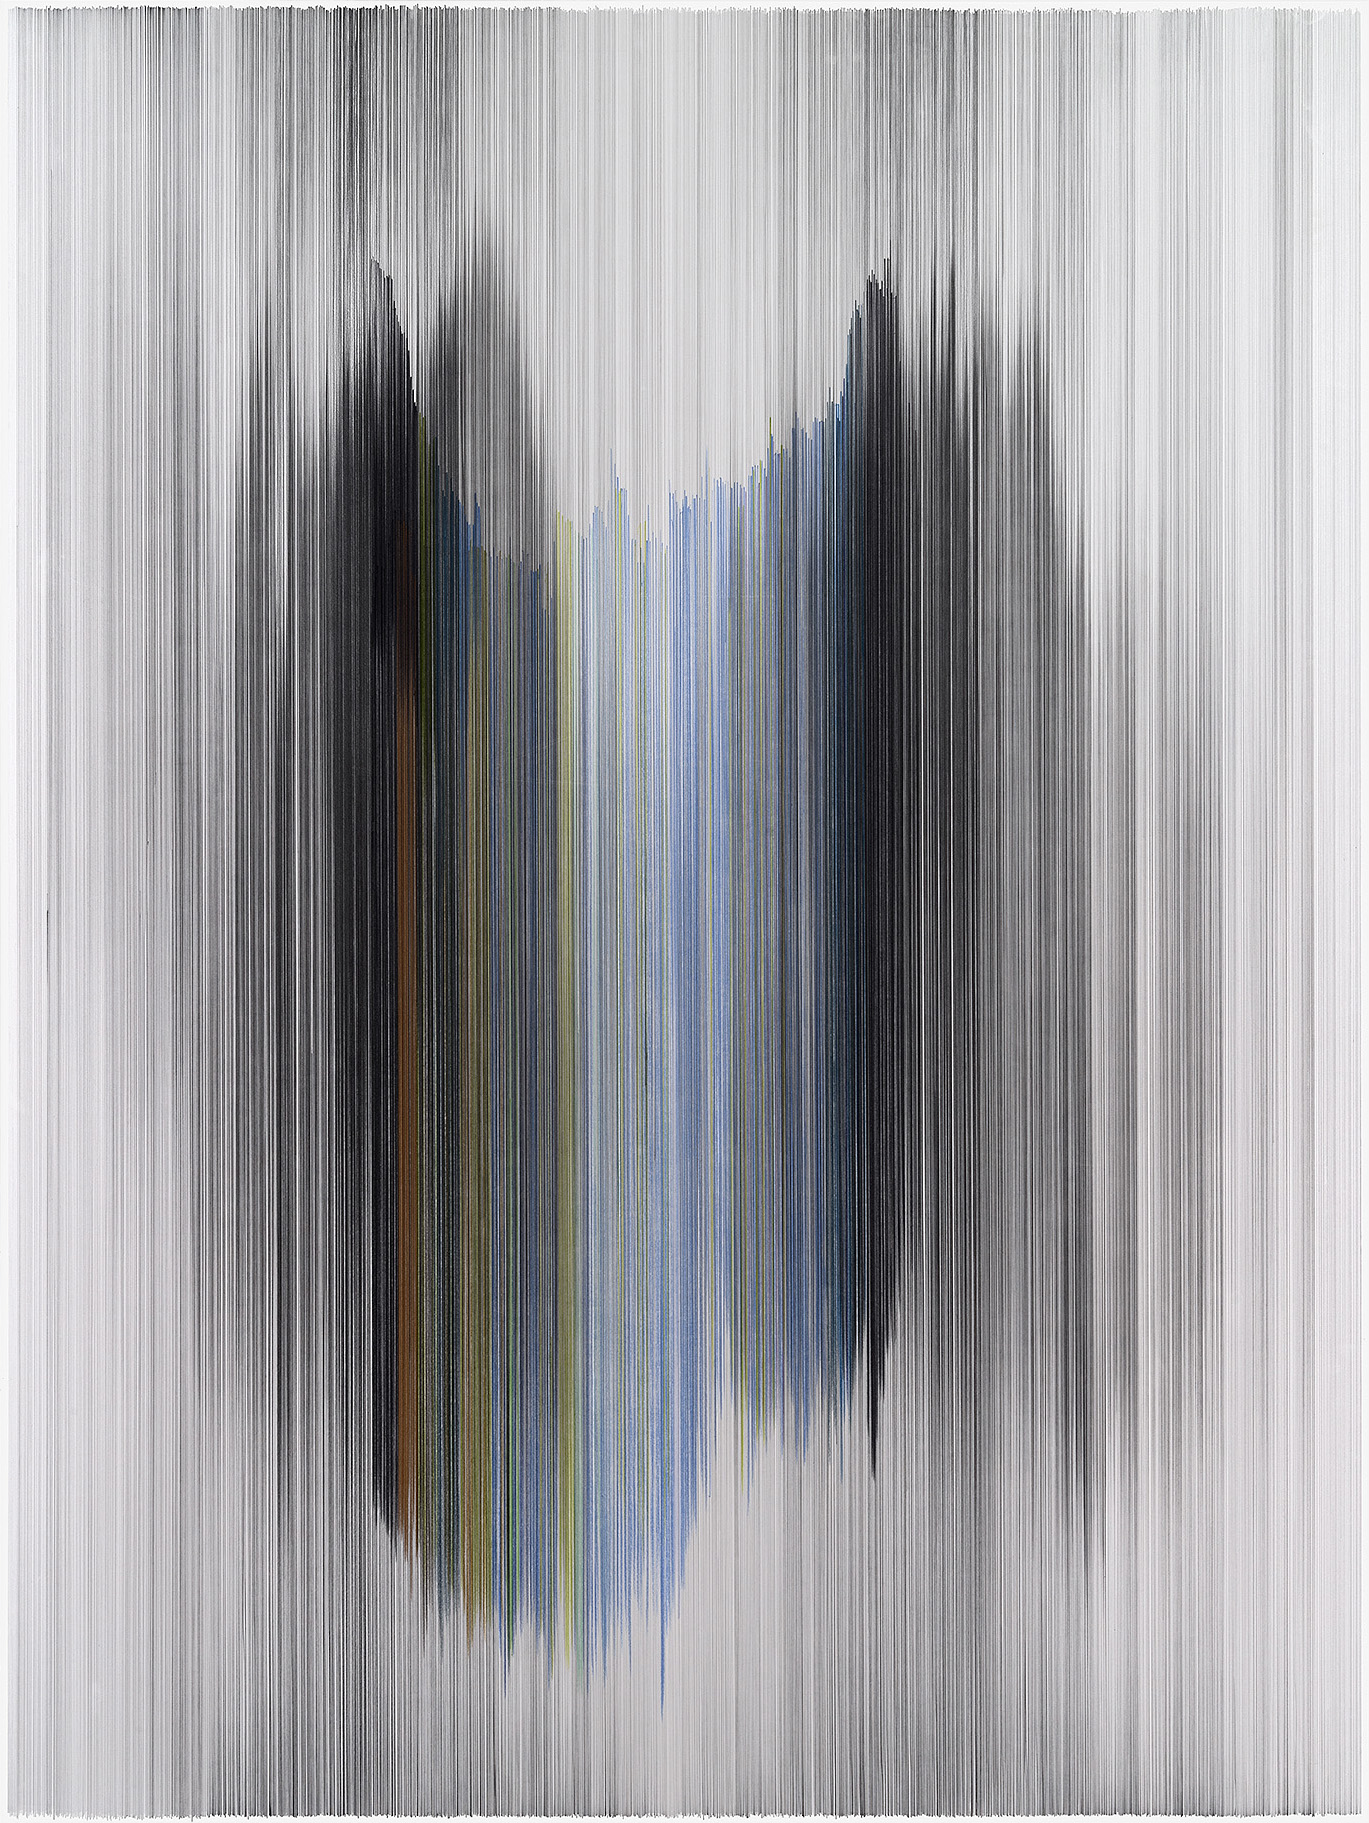 parallel 47  2014 graphite & colored pencil on mat board 60 by 80 inches Bill & Kristi Gautreaux Collection, Kansas City, MO